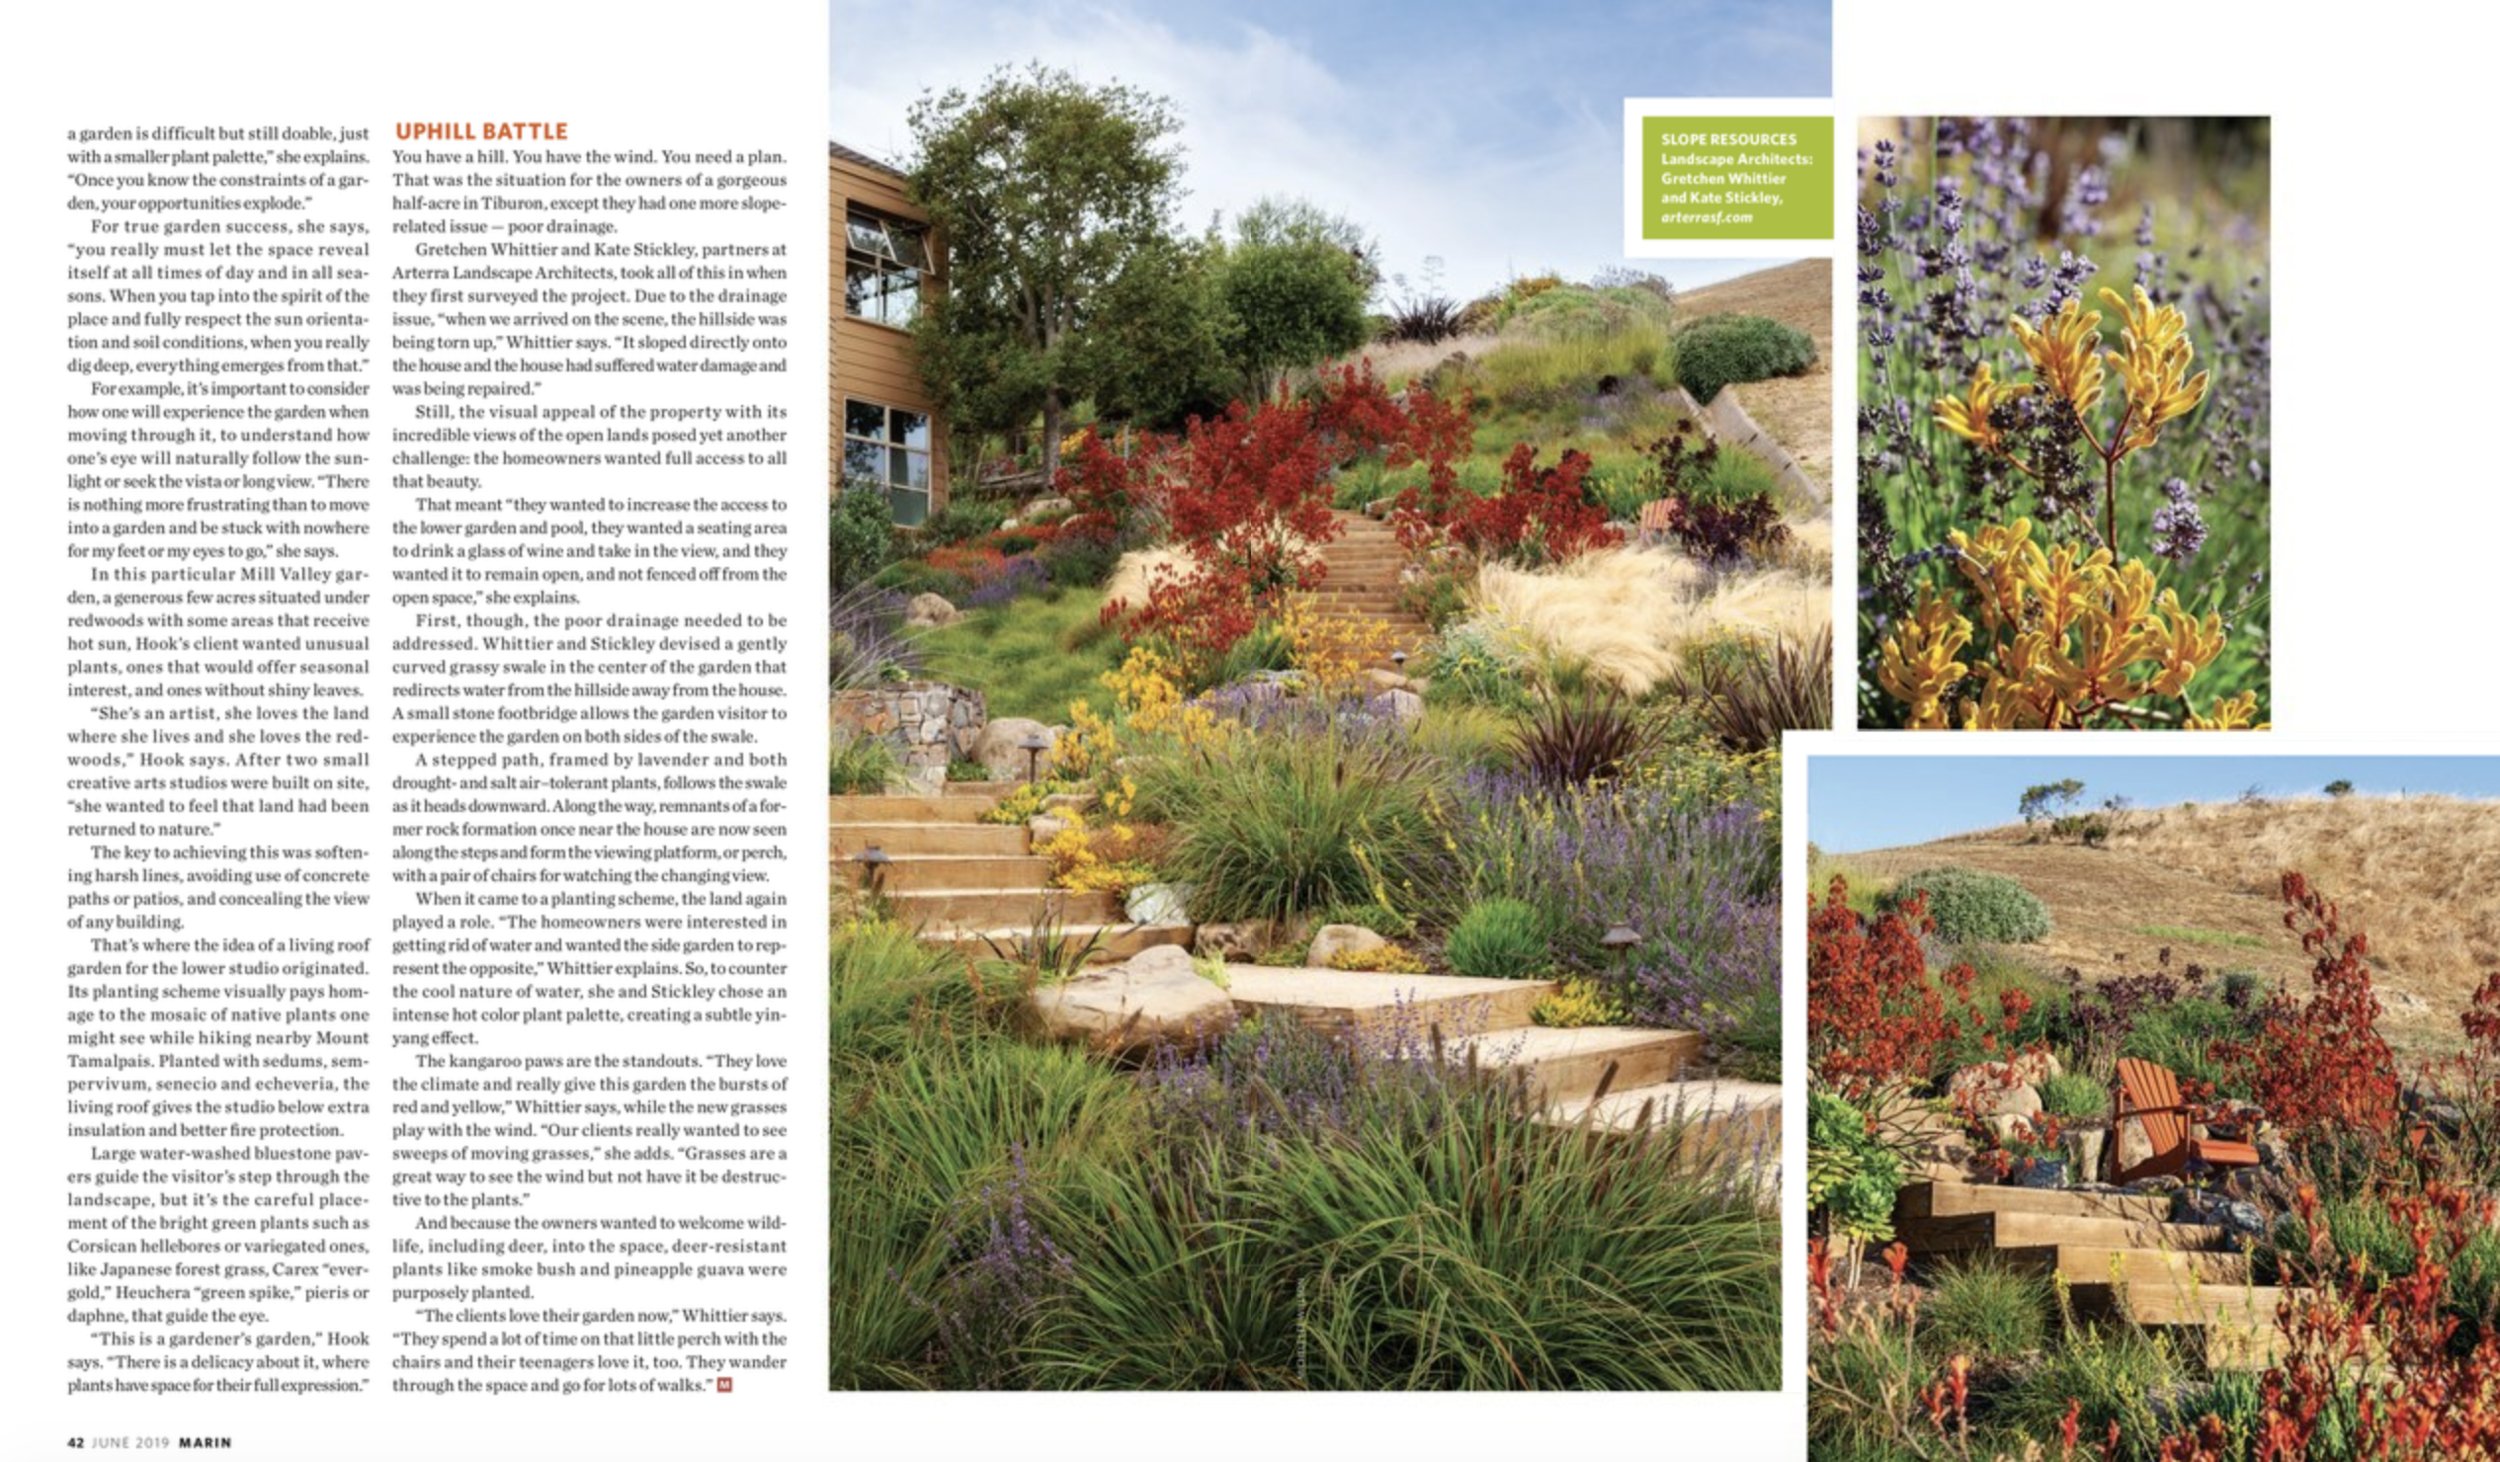 A magazine spread showing Arterra's project, The Painterly Approach, with a staircase winding through native and low-water plantings.